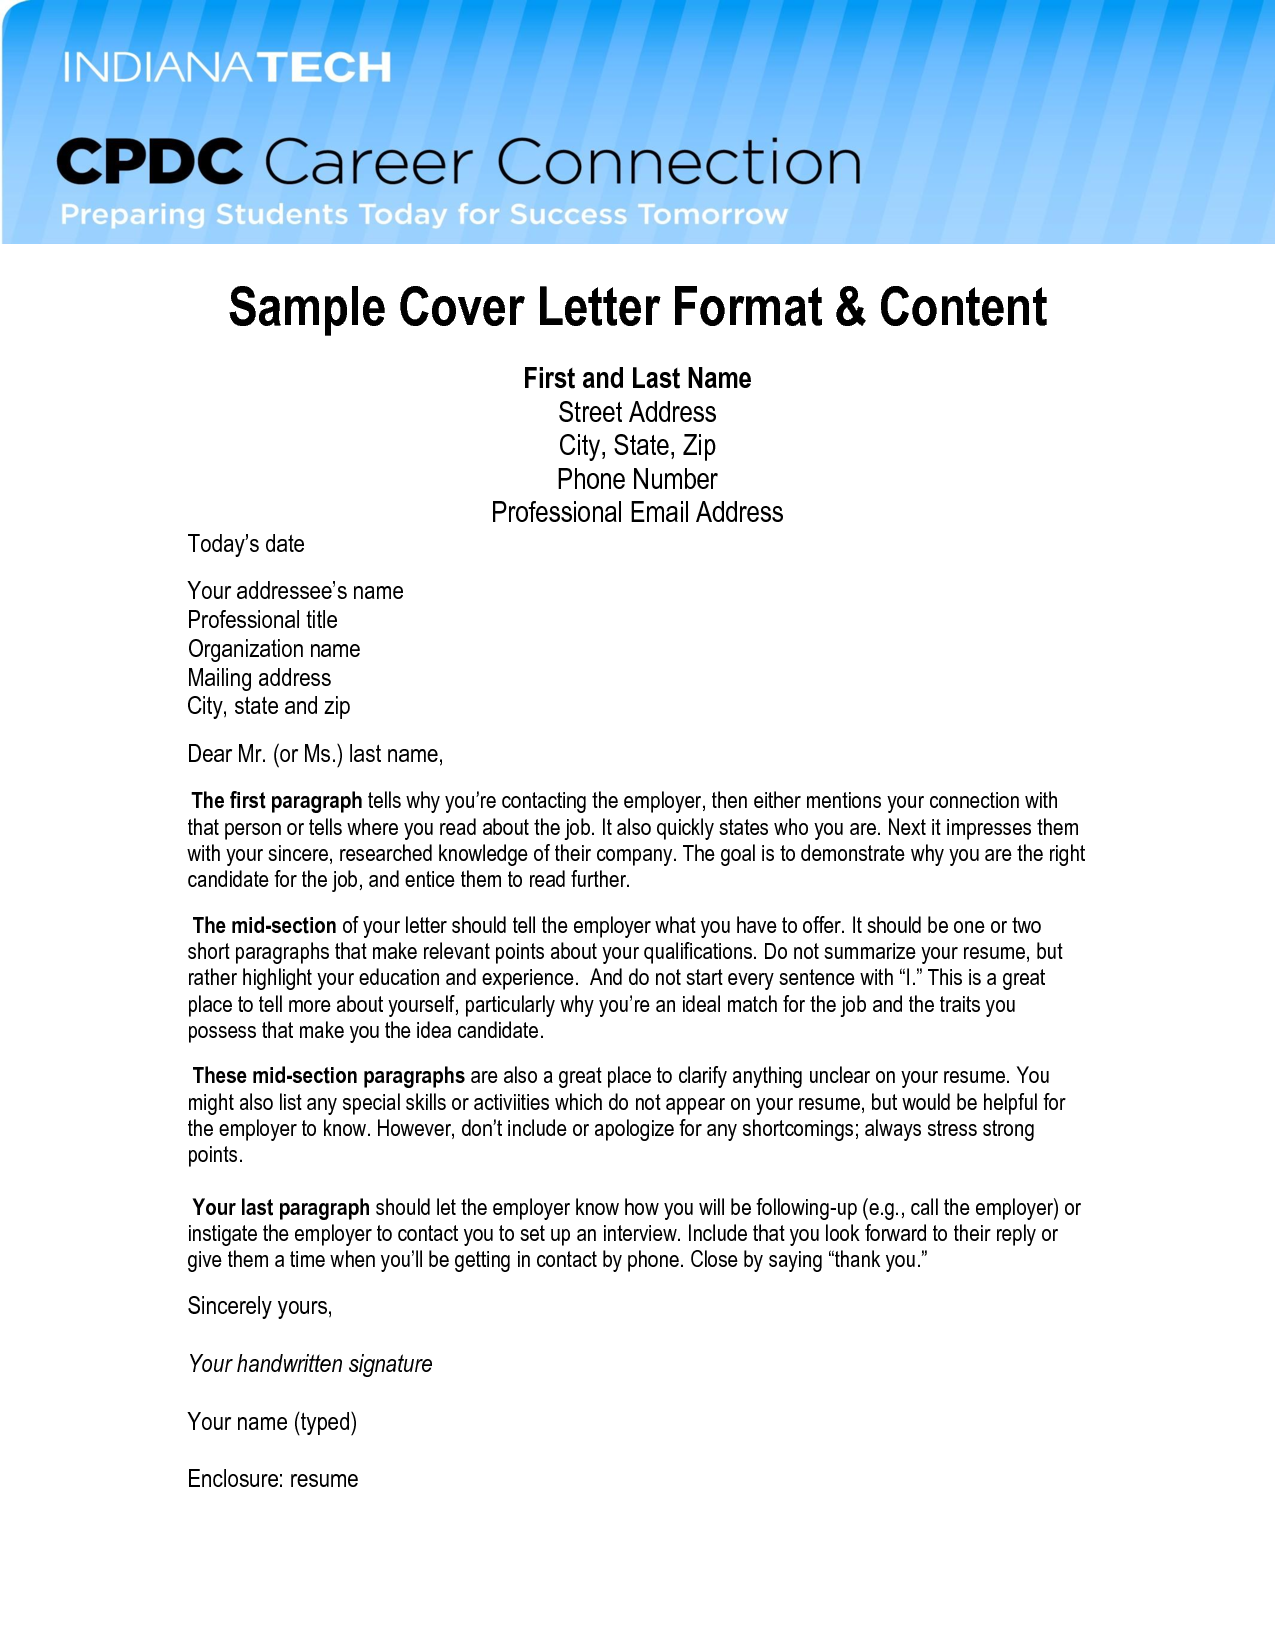 Email cover letter format campaign very interested the top with email cover letter format campaign very interested the top with formal business exampleofessional address spiritdancerdesigns Choice Image